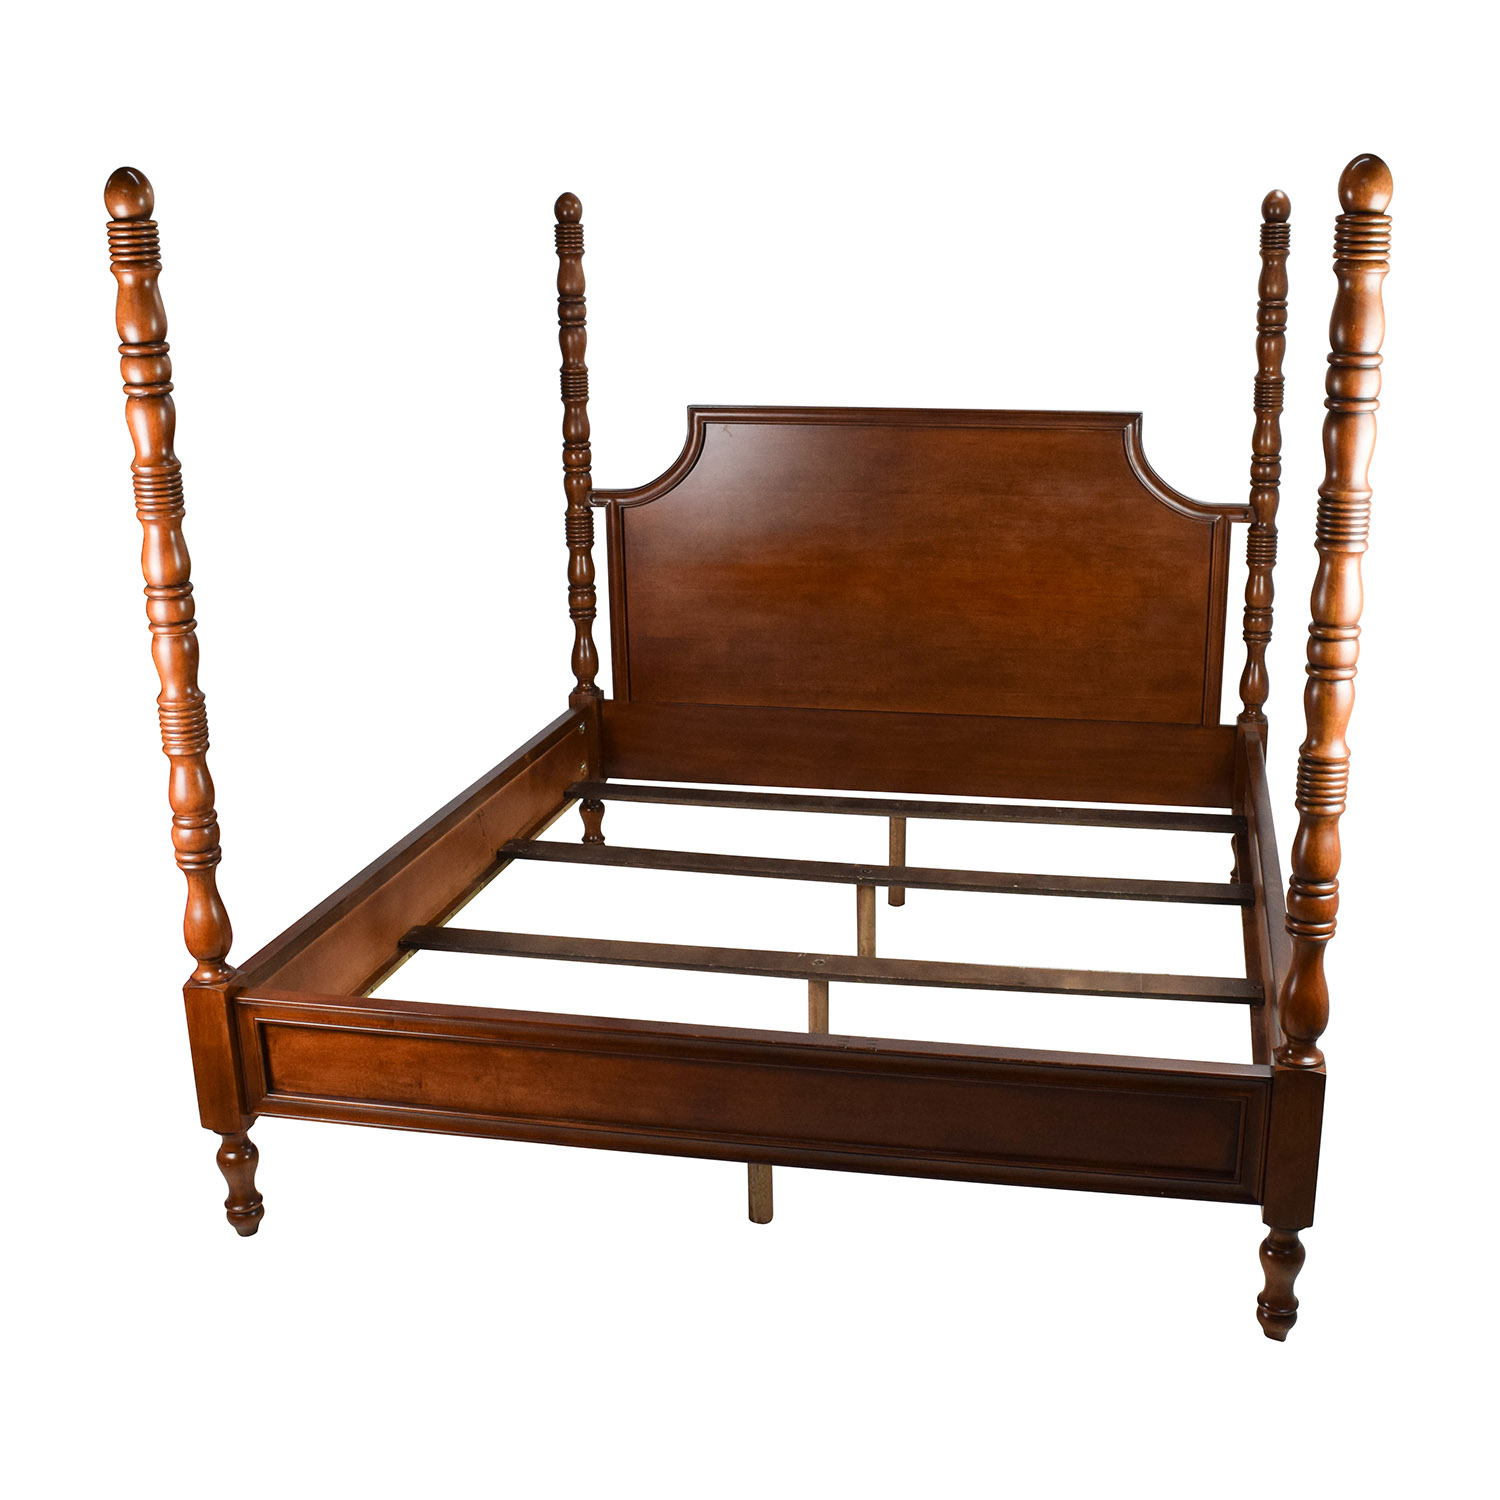 77% OFF - Thomasville Furniture Thomasville King Size Poster Bed / Beds